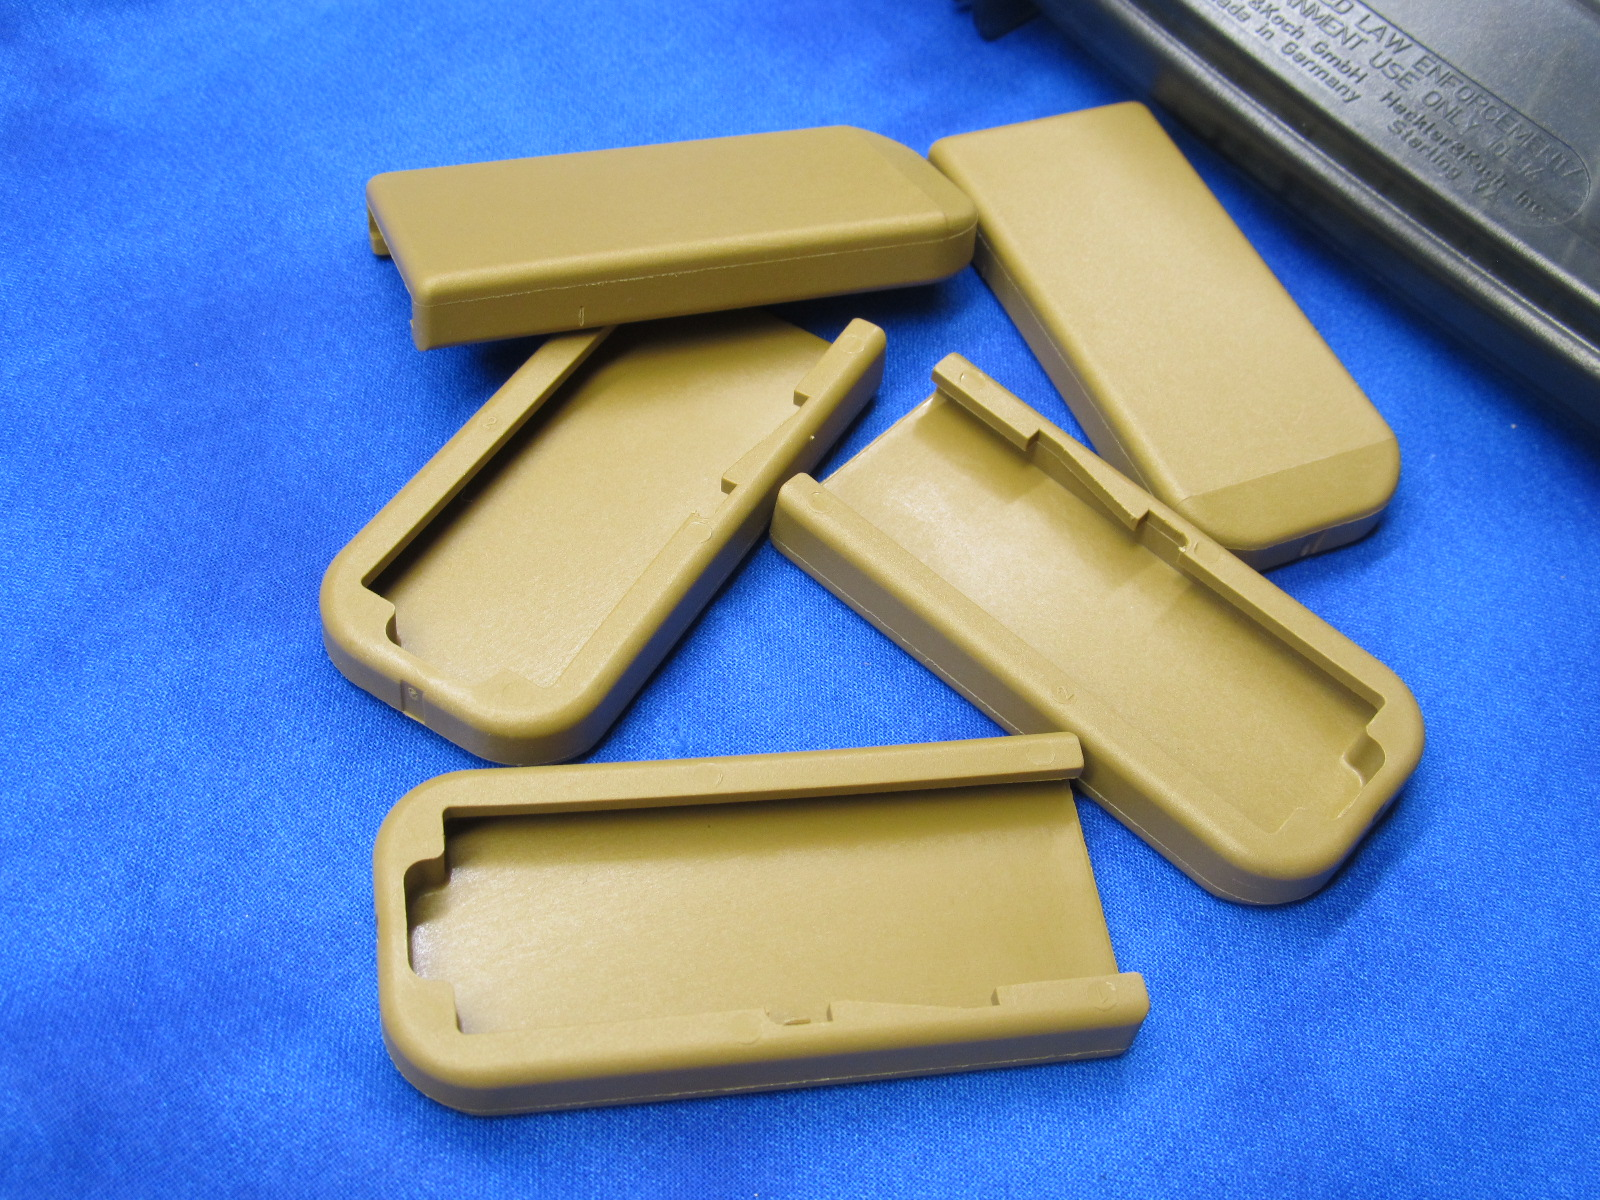 Misc G36/HK243 Parts for Sale-img_4894.jpg